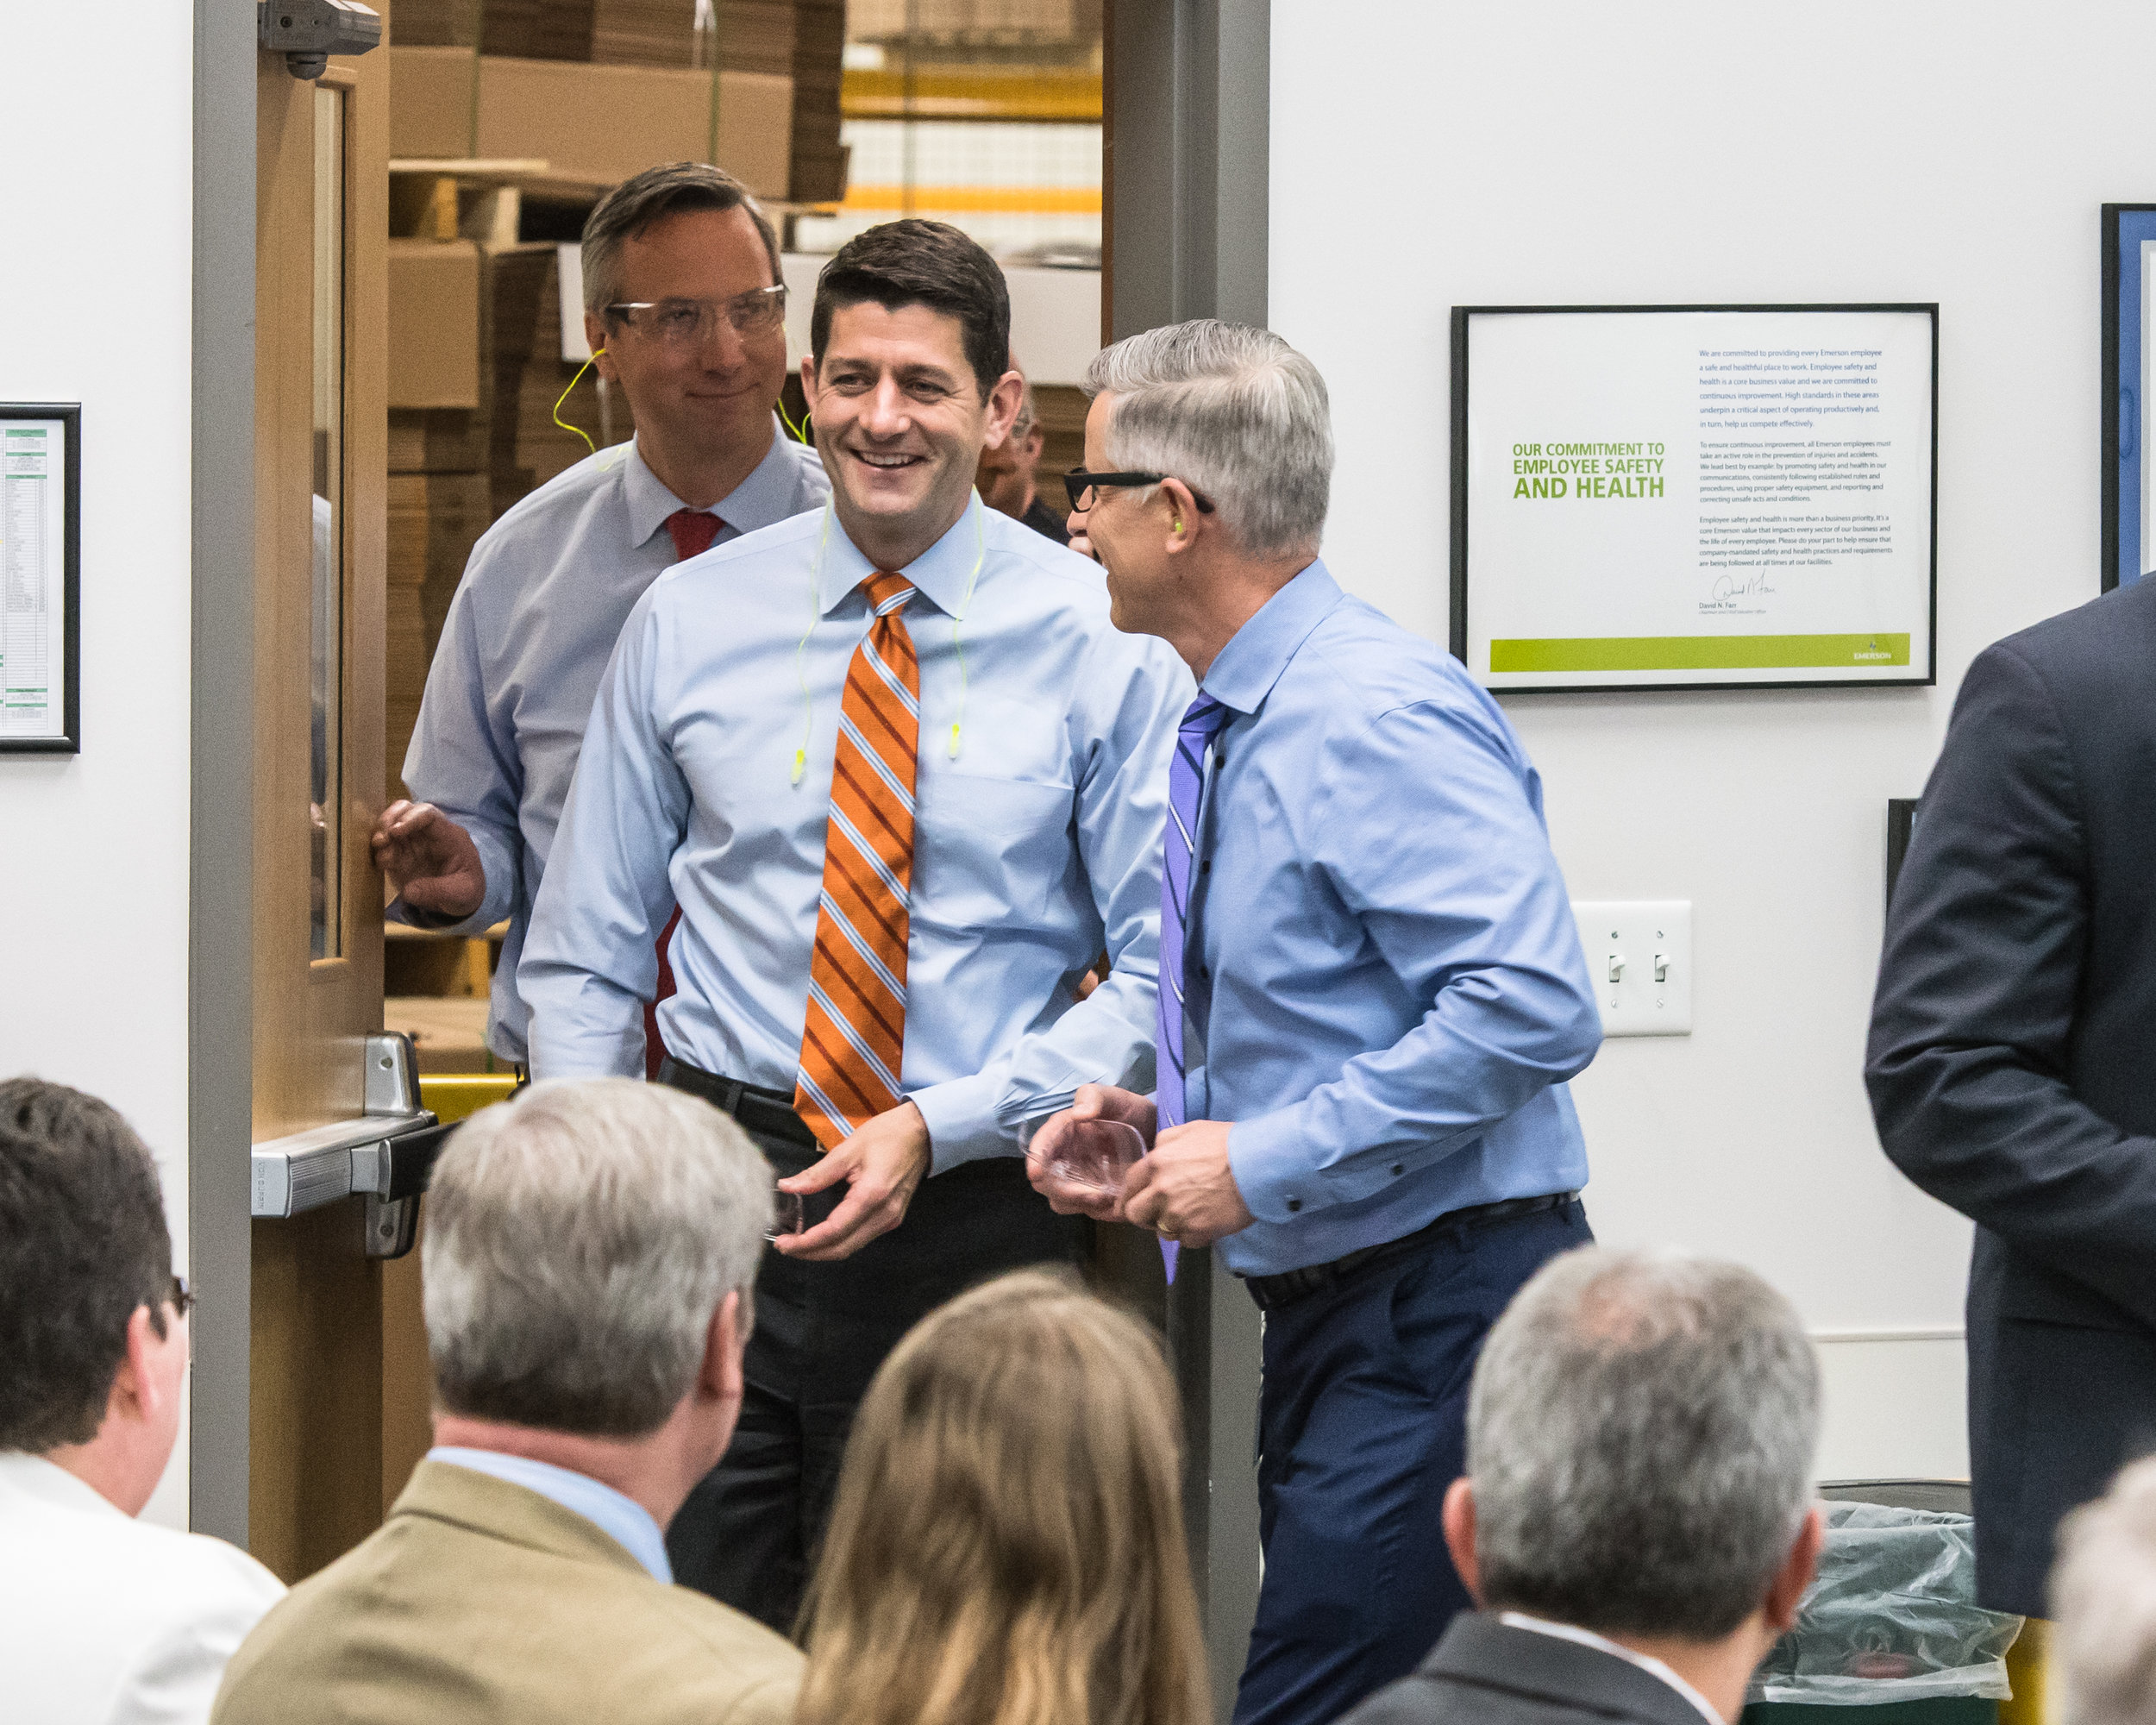 Congressman and House Speaker Paul Ryan arrives at Emerson and InSinkErator's news conference to update plans for InSinkErator's new headquarters and facility in Racine Thursday morning.